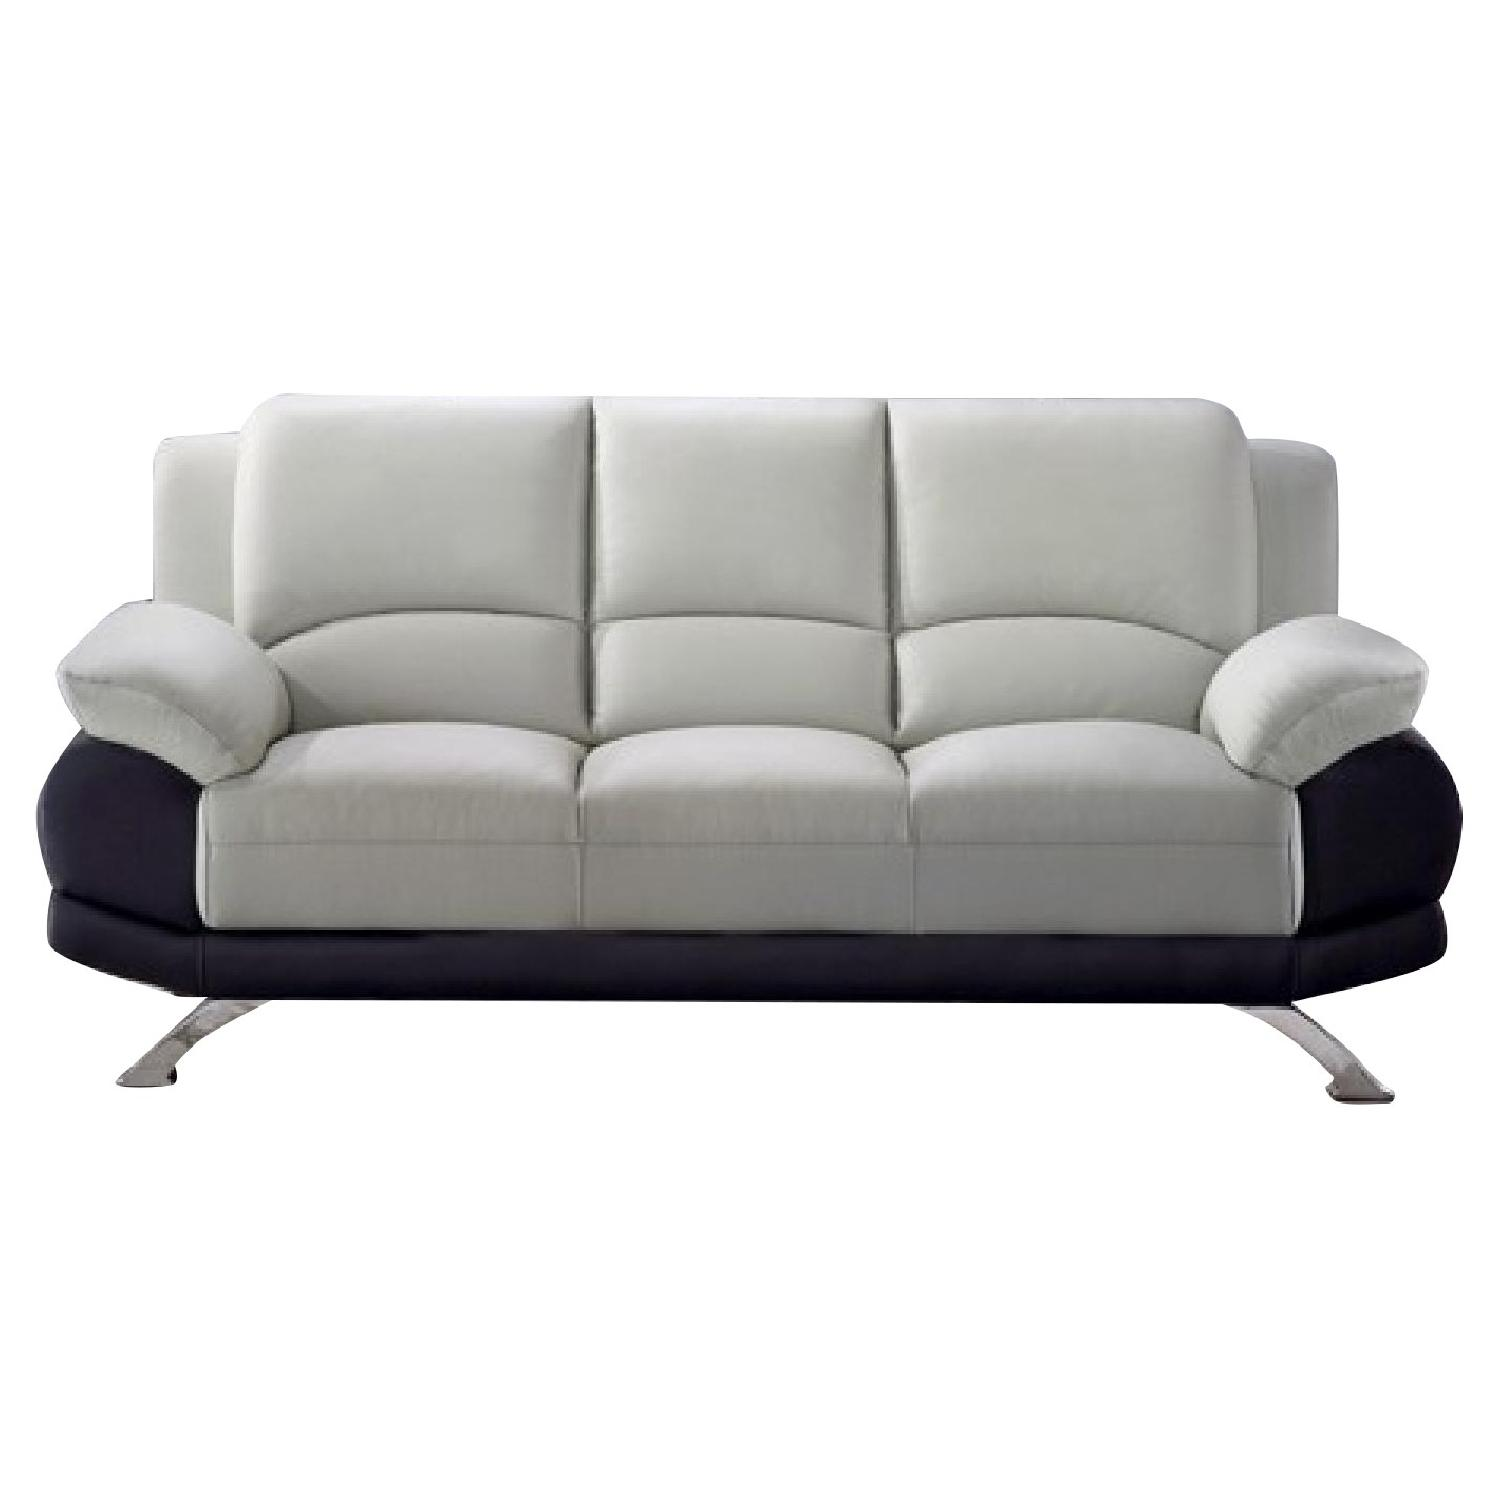 Casual Style Sofa in 2-Tone Grey-Black Top Grain Leather w/ Gently Sloped Armrests & Chrome Legs